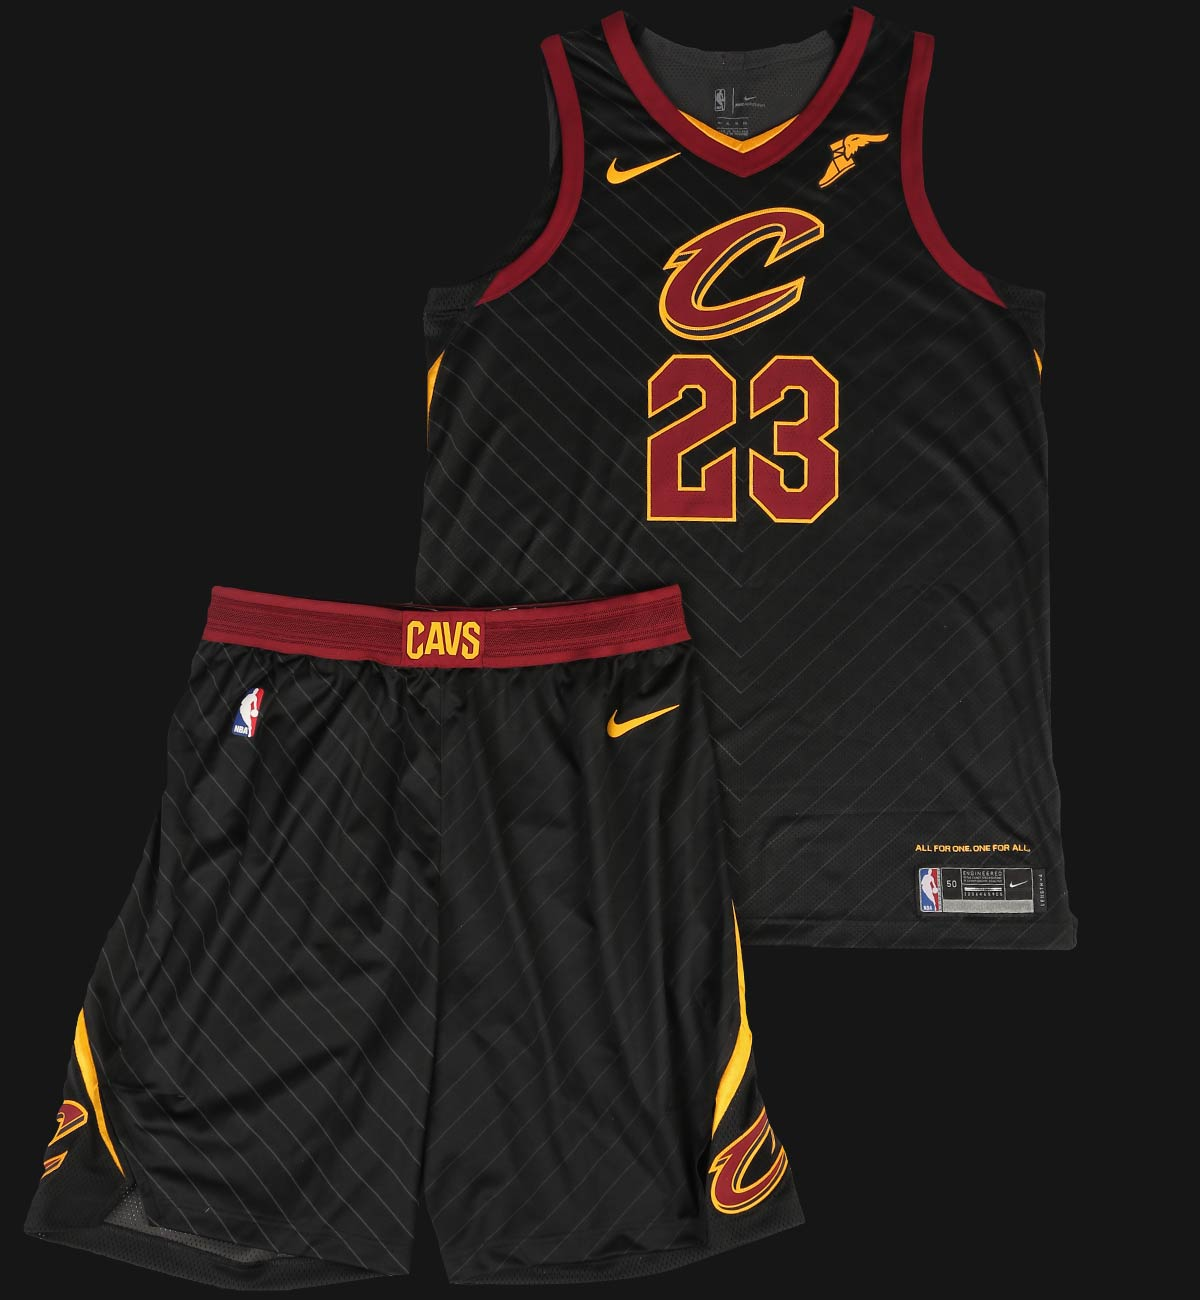 945c191d3 ... purchase at the Cavs Team Shop at The Q and online at Cavs.com Shop.  The recently introduced Association and Icon Edition uniforms will be  available for ...